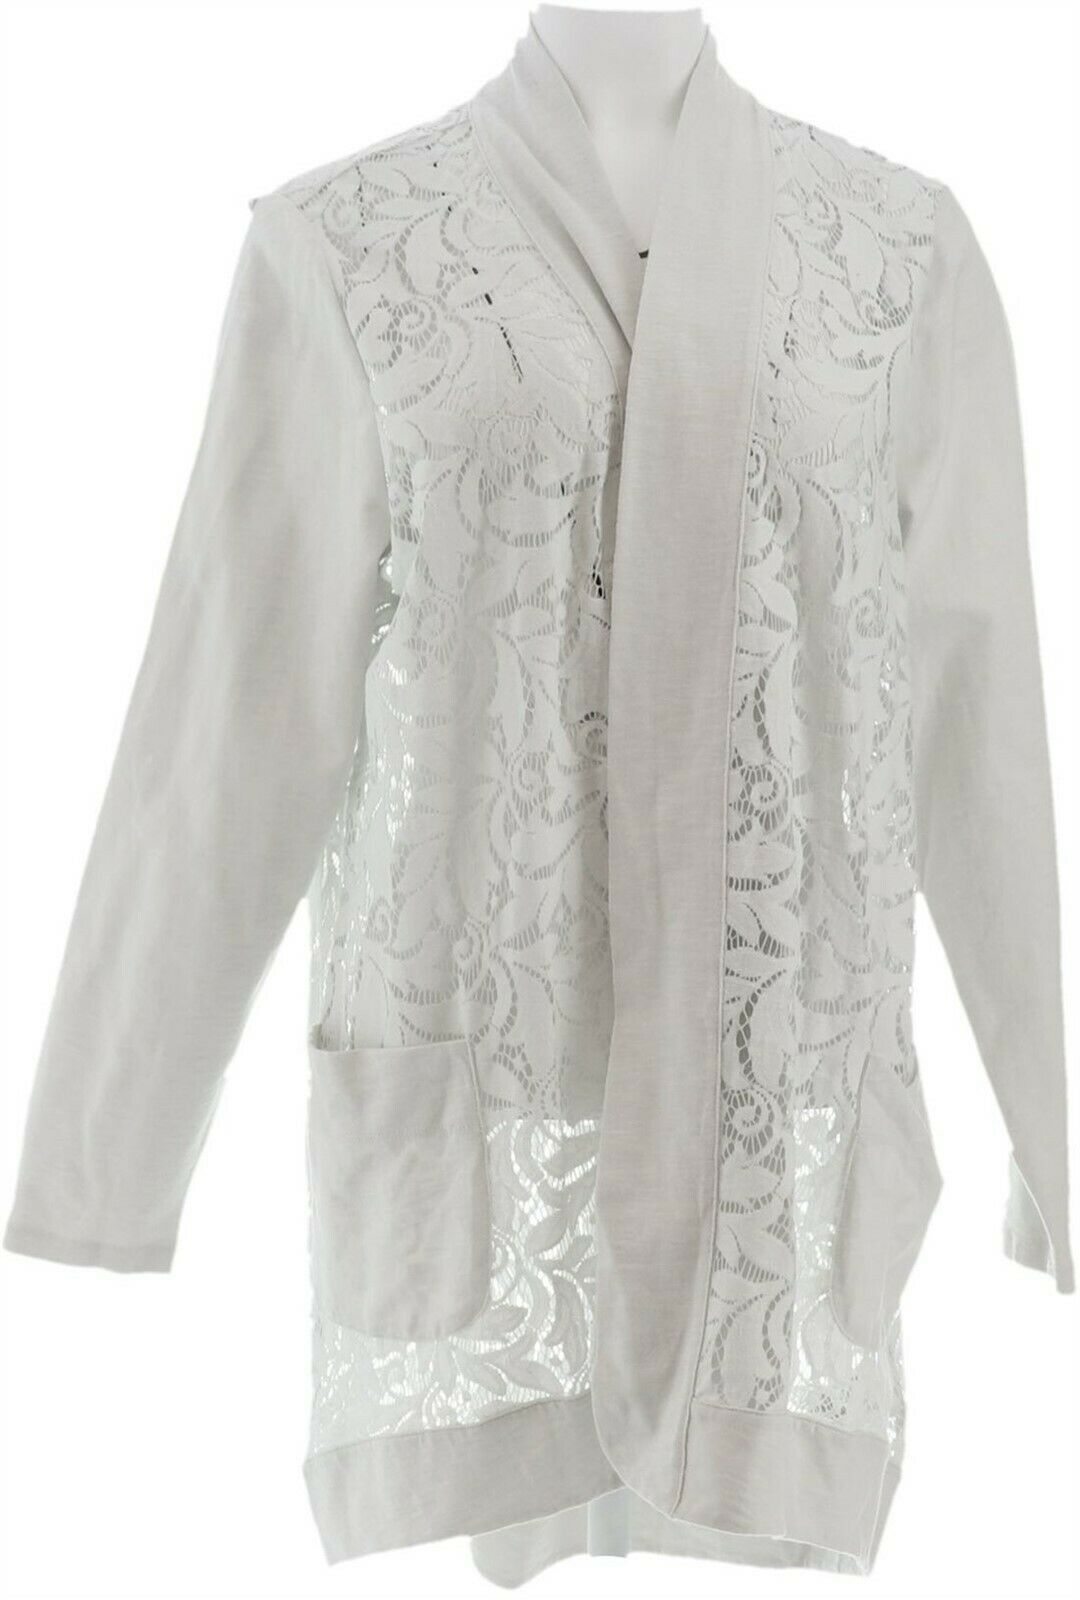 Primary image for LOGO Lori Goldstein Open Front Slub Cardigan Lace White Birch L NEW A274095